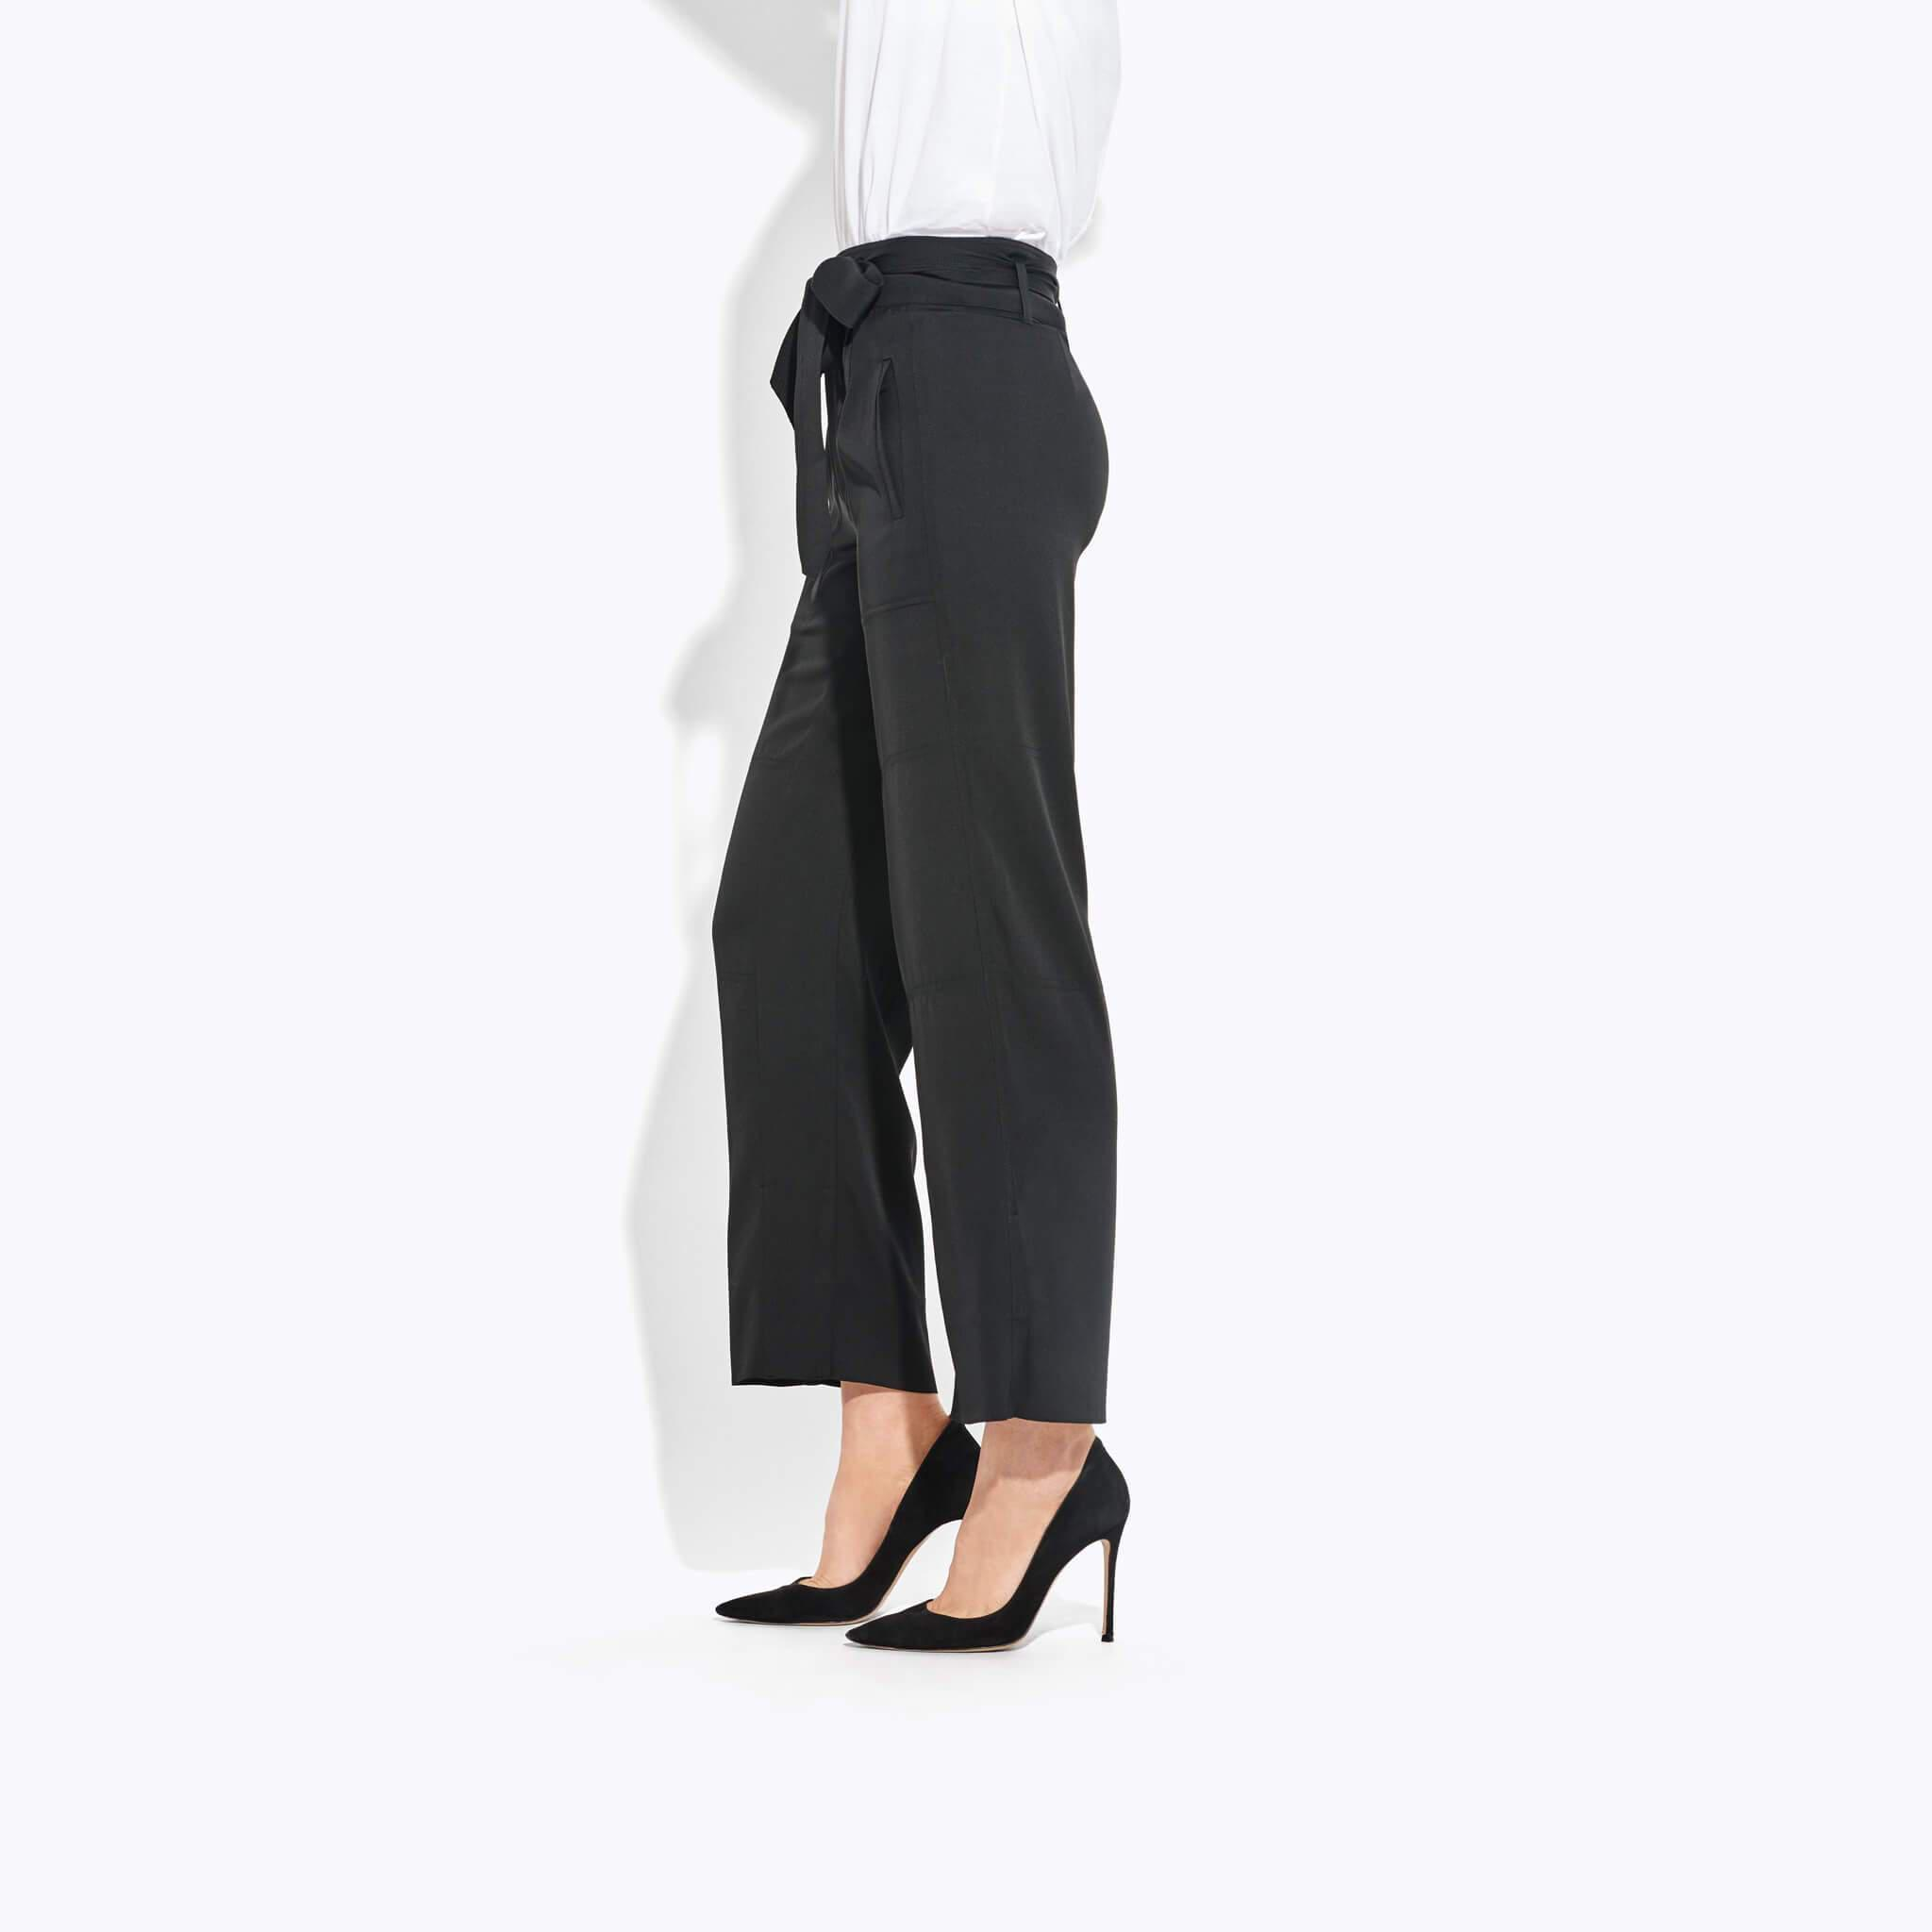 The Mirage Pant 2